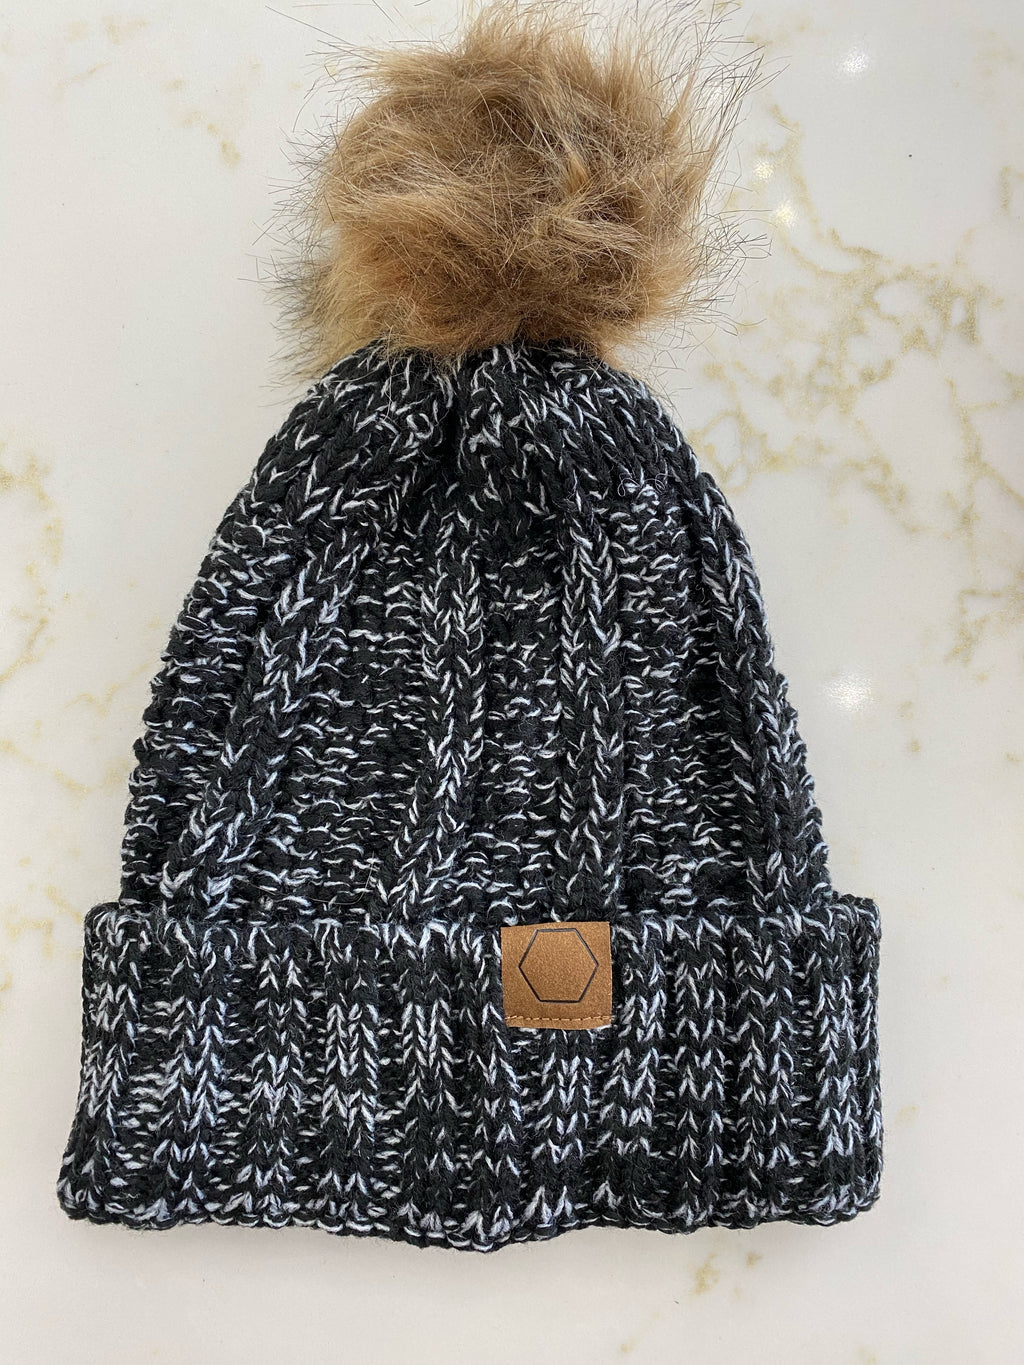 Heathered Black Pom Pom Beanie